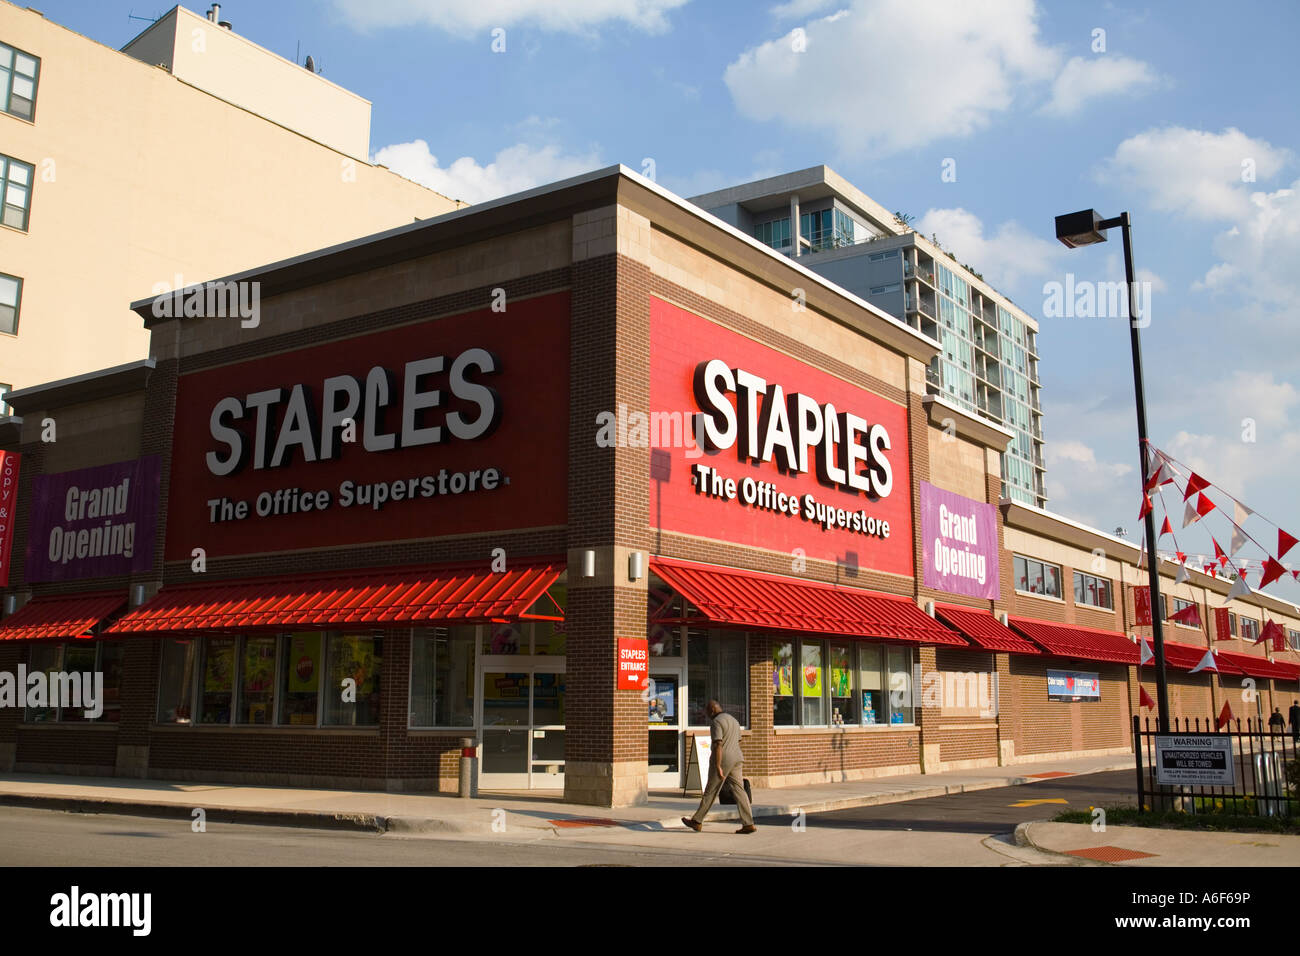 ILLINOIS Chicago Exterior Of Staples Office Supplies Store Man Walk Down  Sidewalk Grand Opening Sign